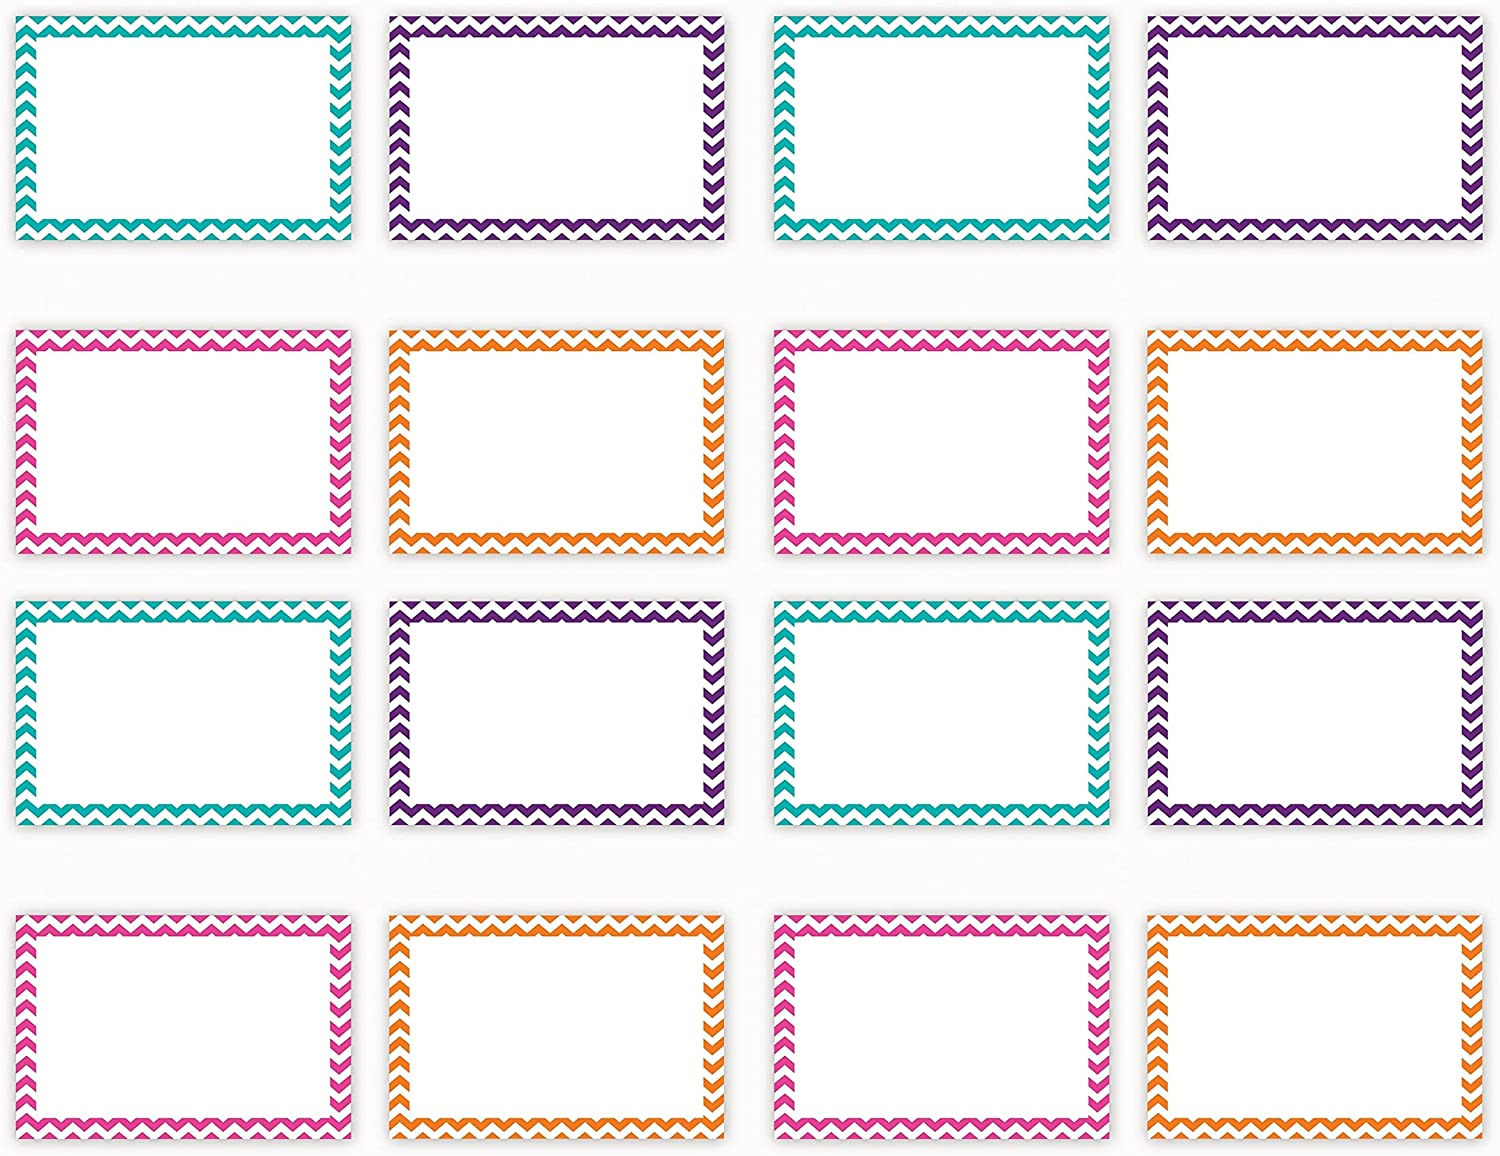 Top Notch Teacher Products Border Index Max 85% OFF Cards 75 Count Blank Product